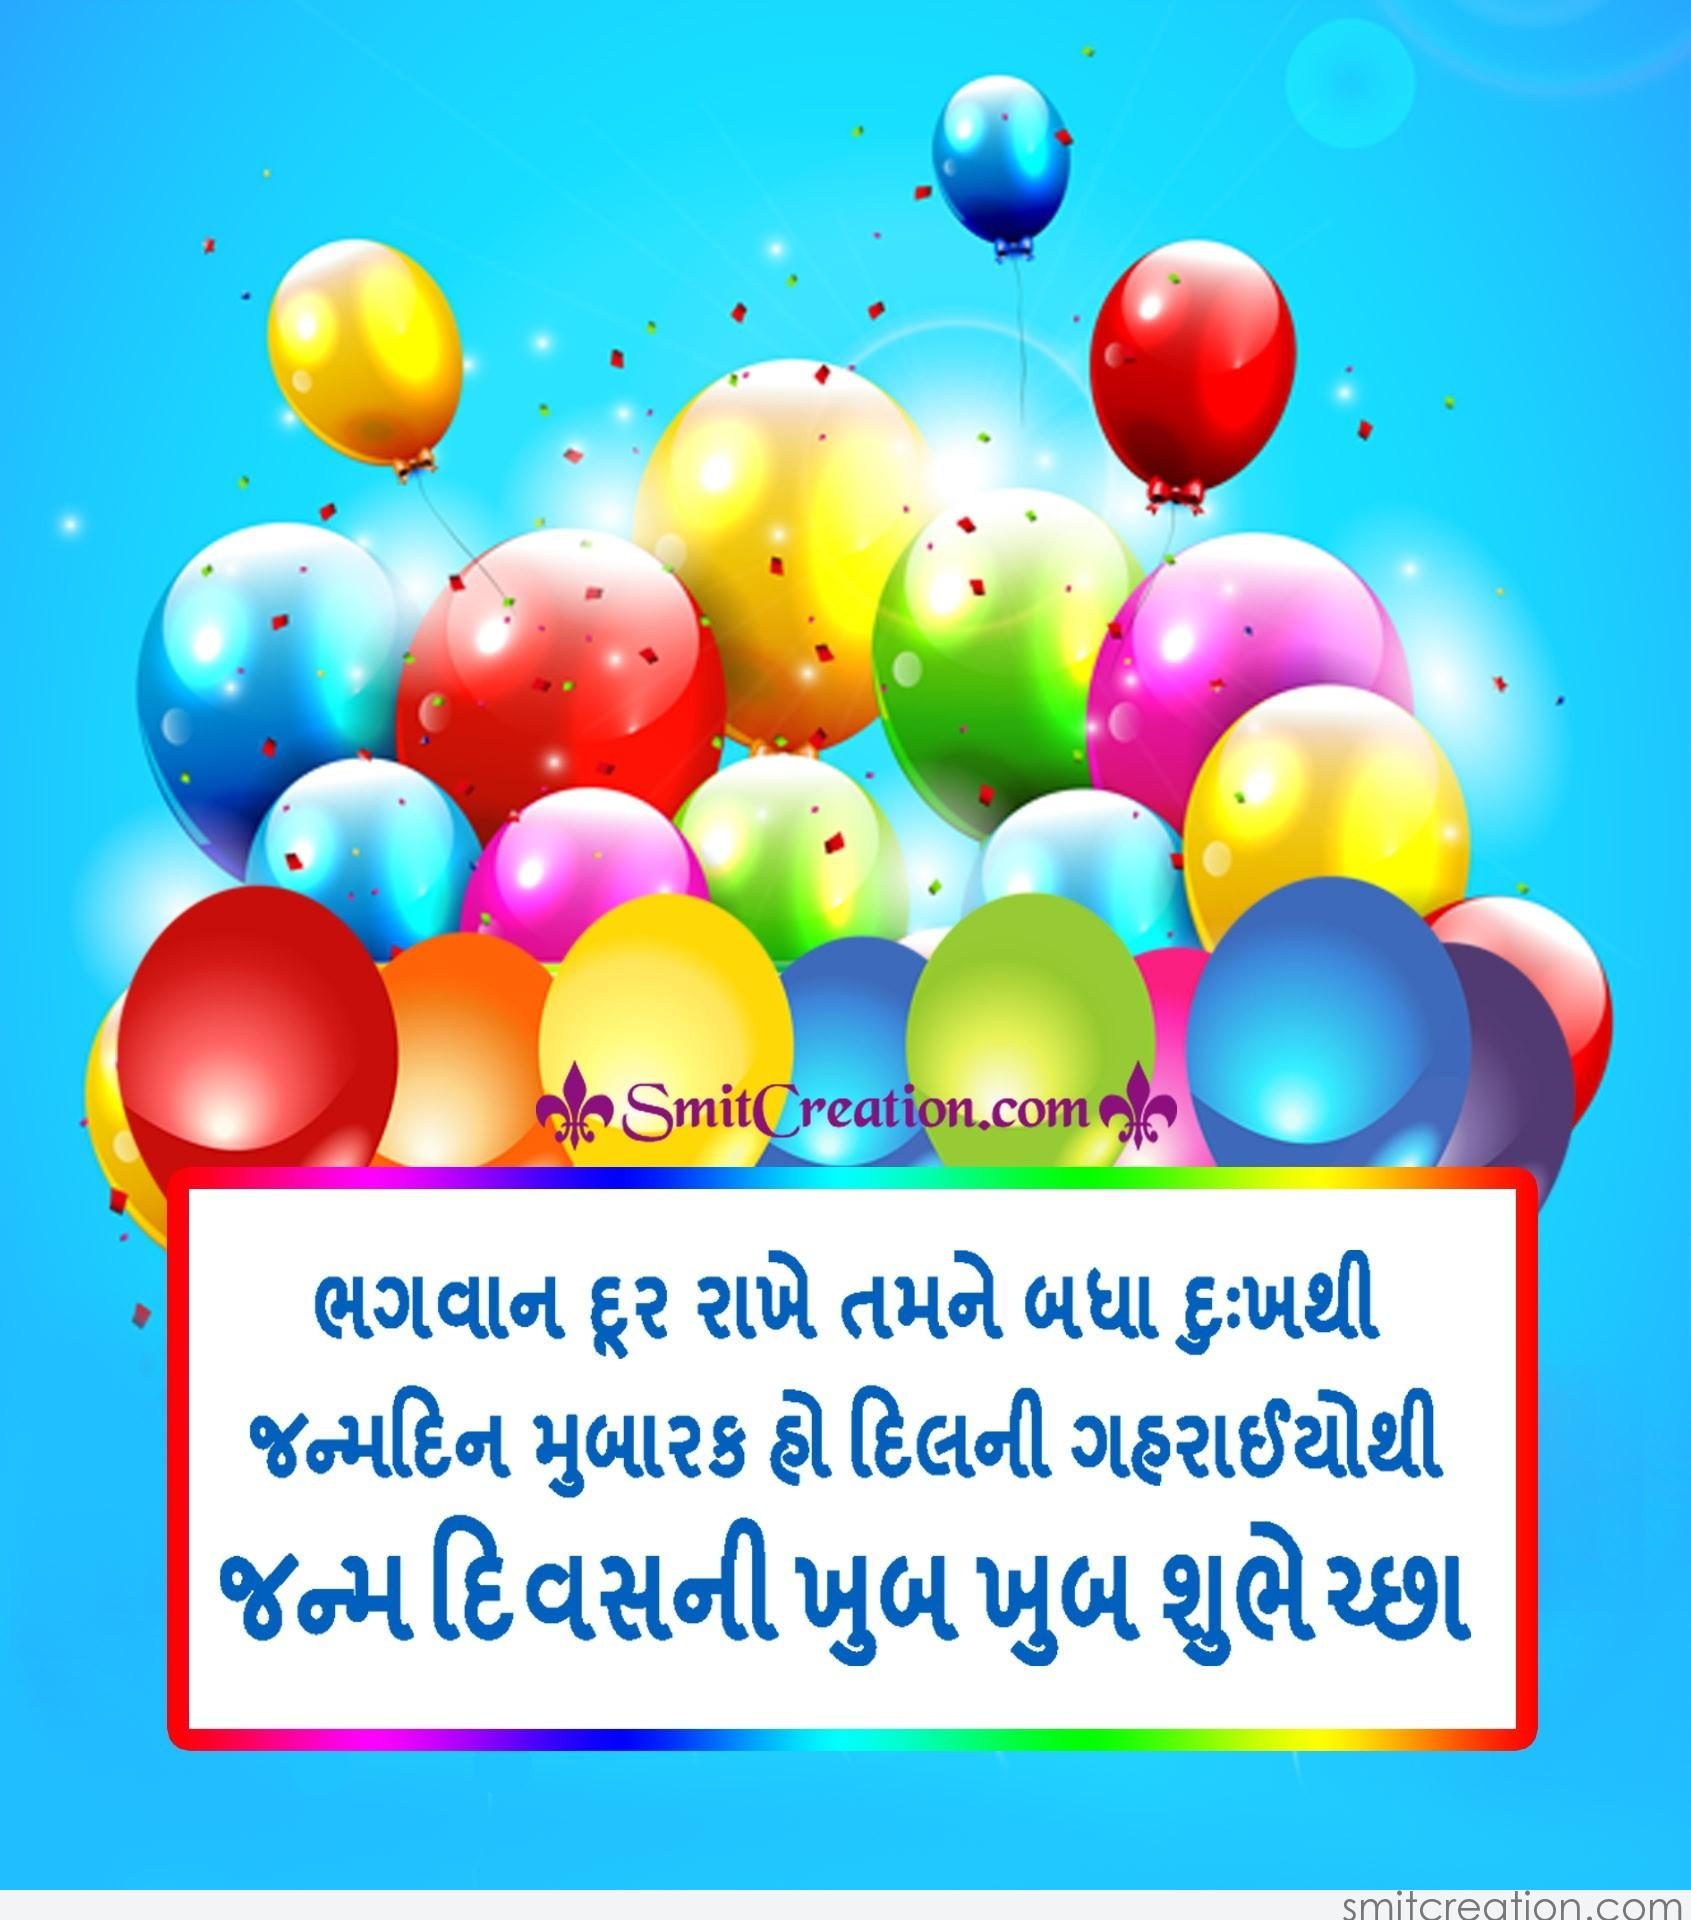 Birthday Gujarati Wishes Pictures And Graphics Smitcreationcom